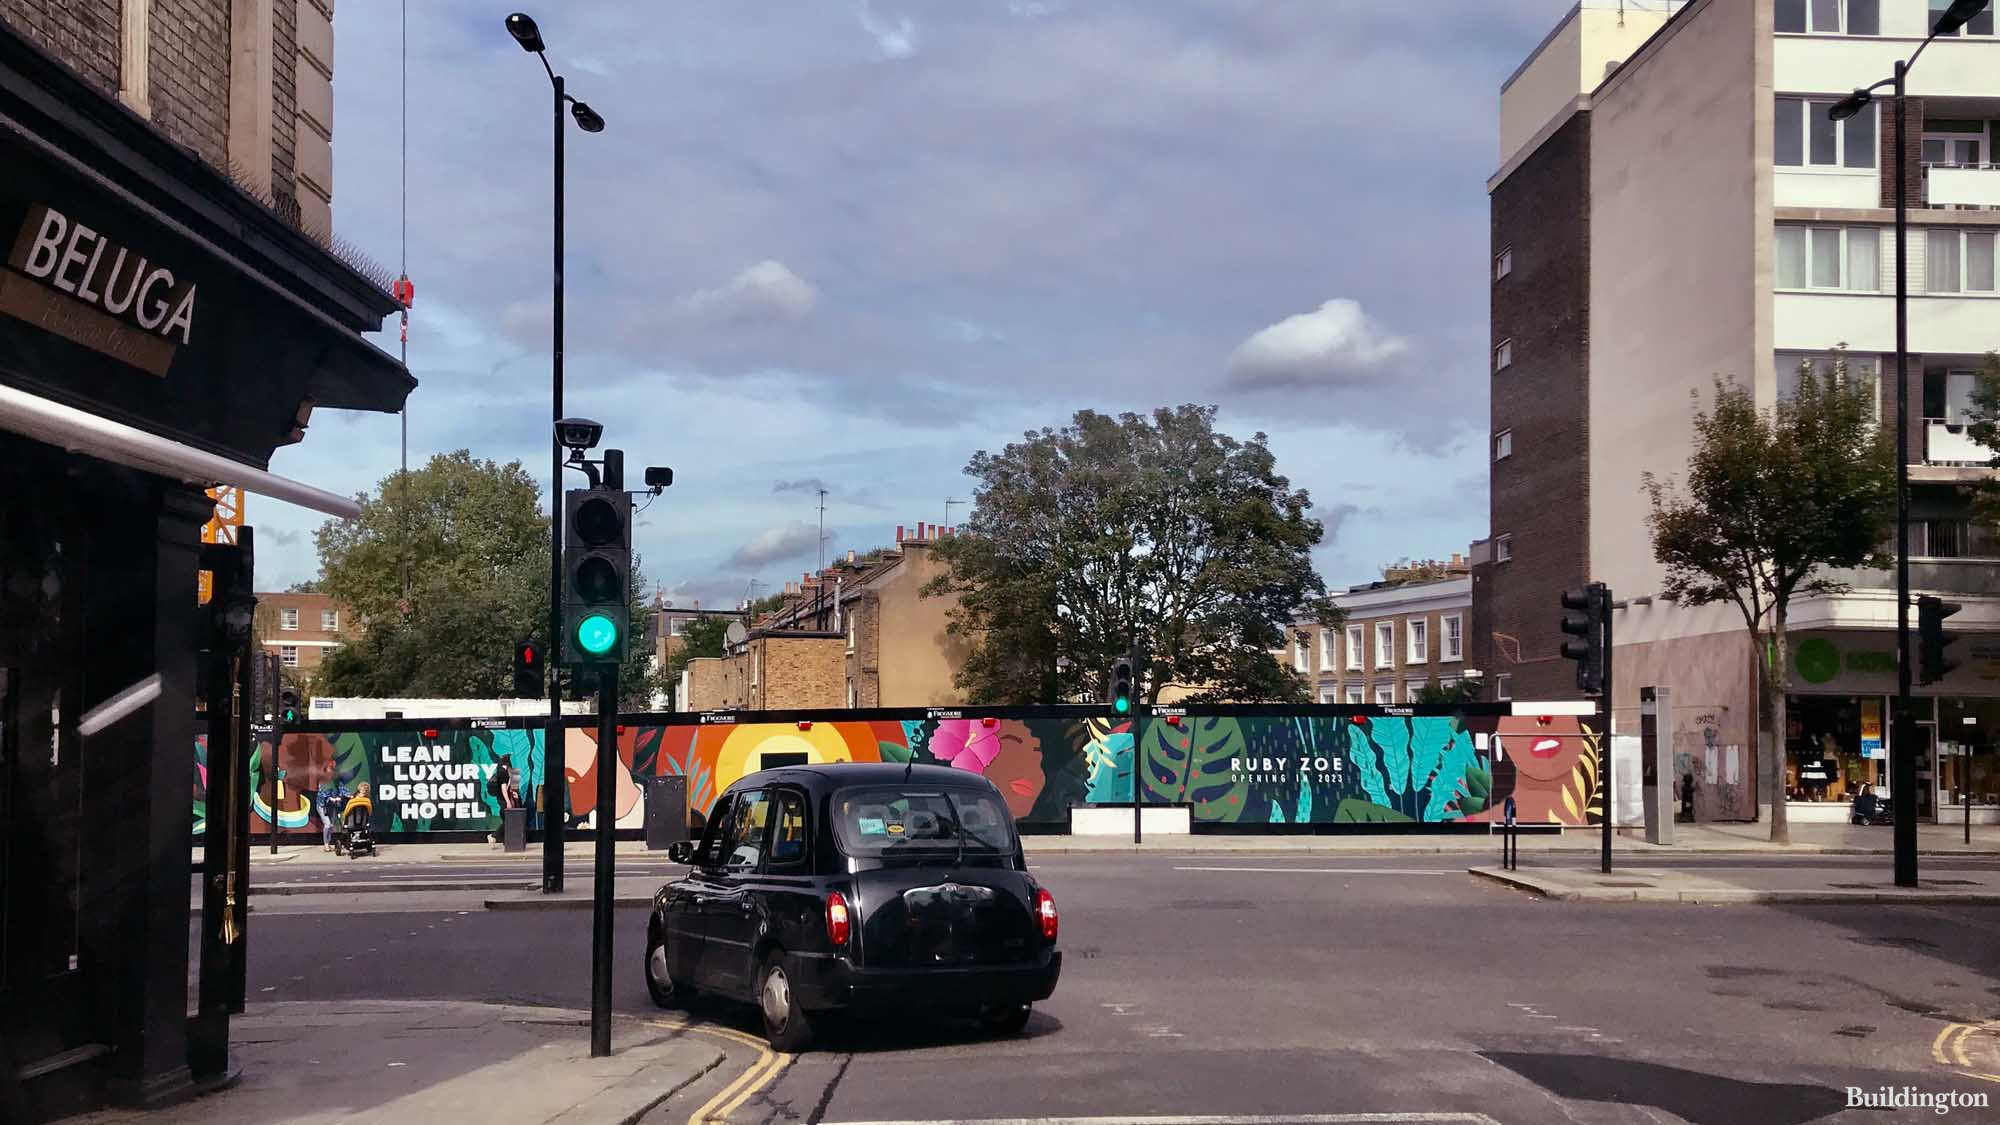 Hoarding on the Ruby Zoe London site in Notting Hill Gate. Coming soon - lean luxury design hotel.